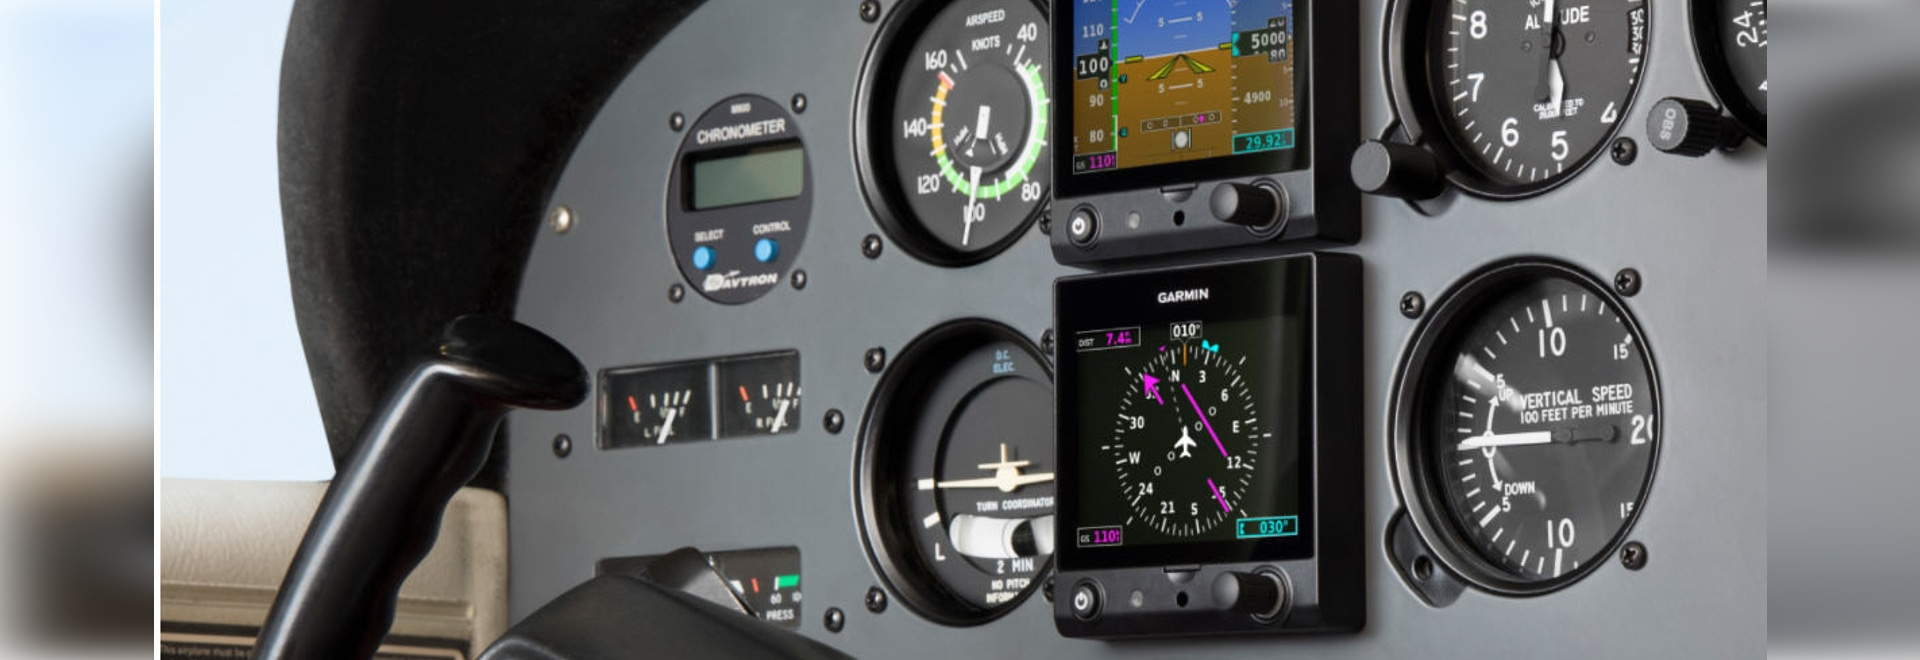 Garmin announces third-party autopilot support for the G5 electronic flight instrument